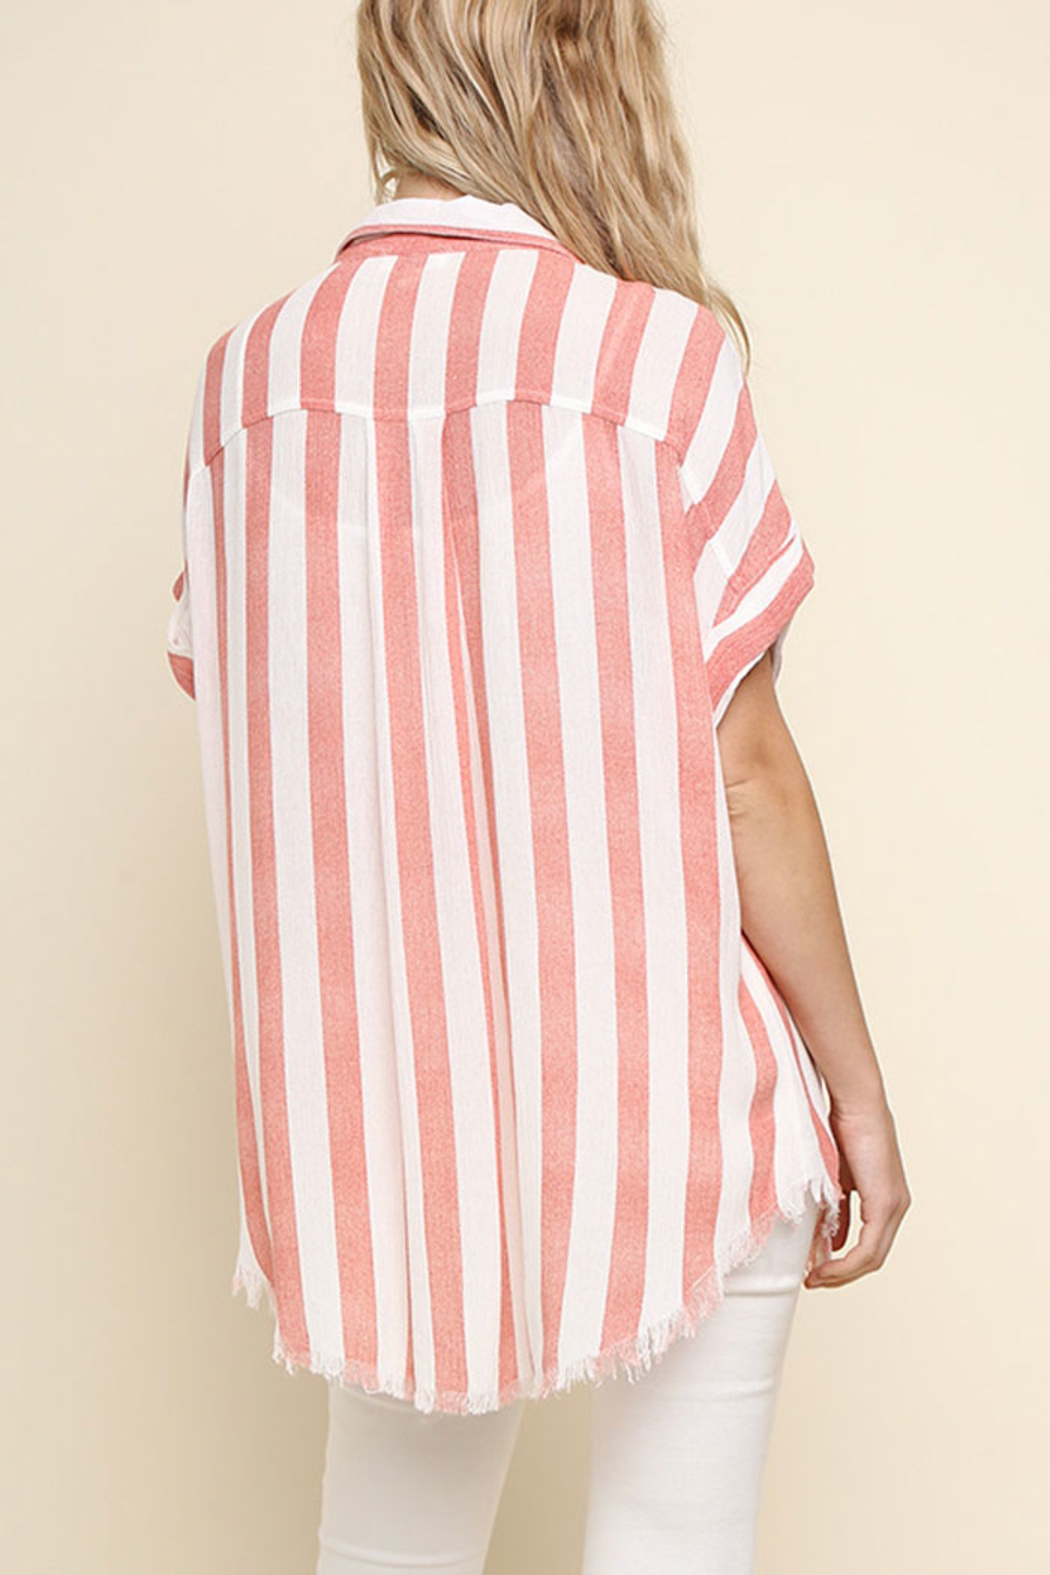 Umgee USA Striped Button-Up Top - Back Cropped Image